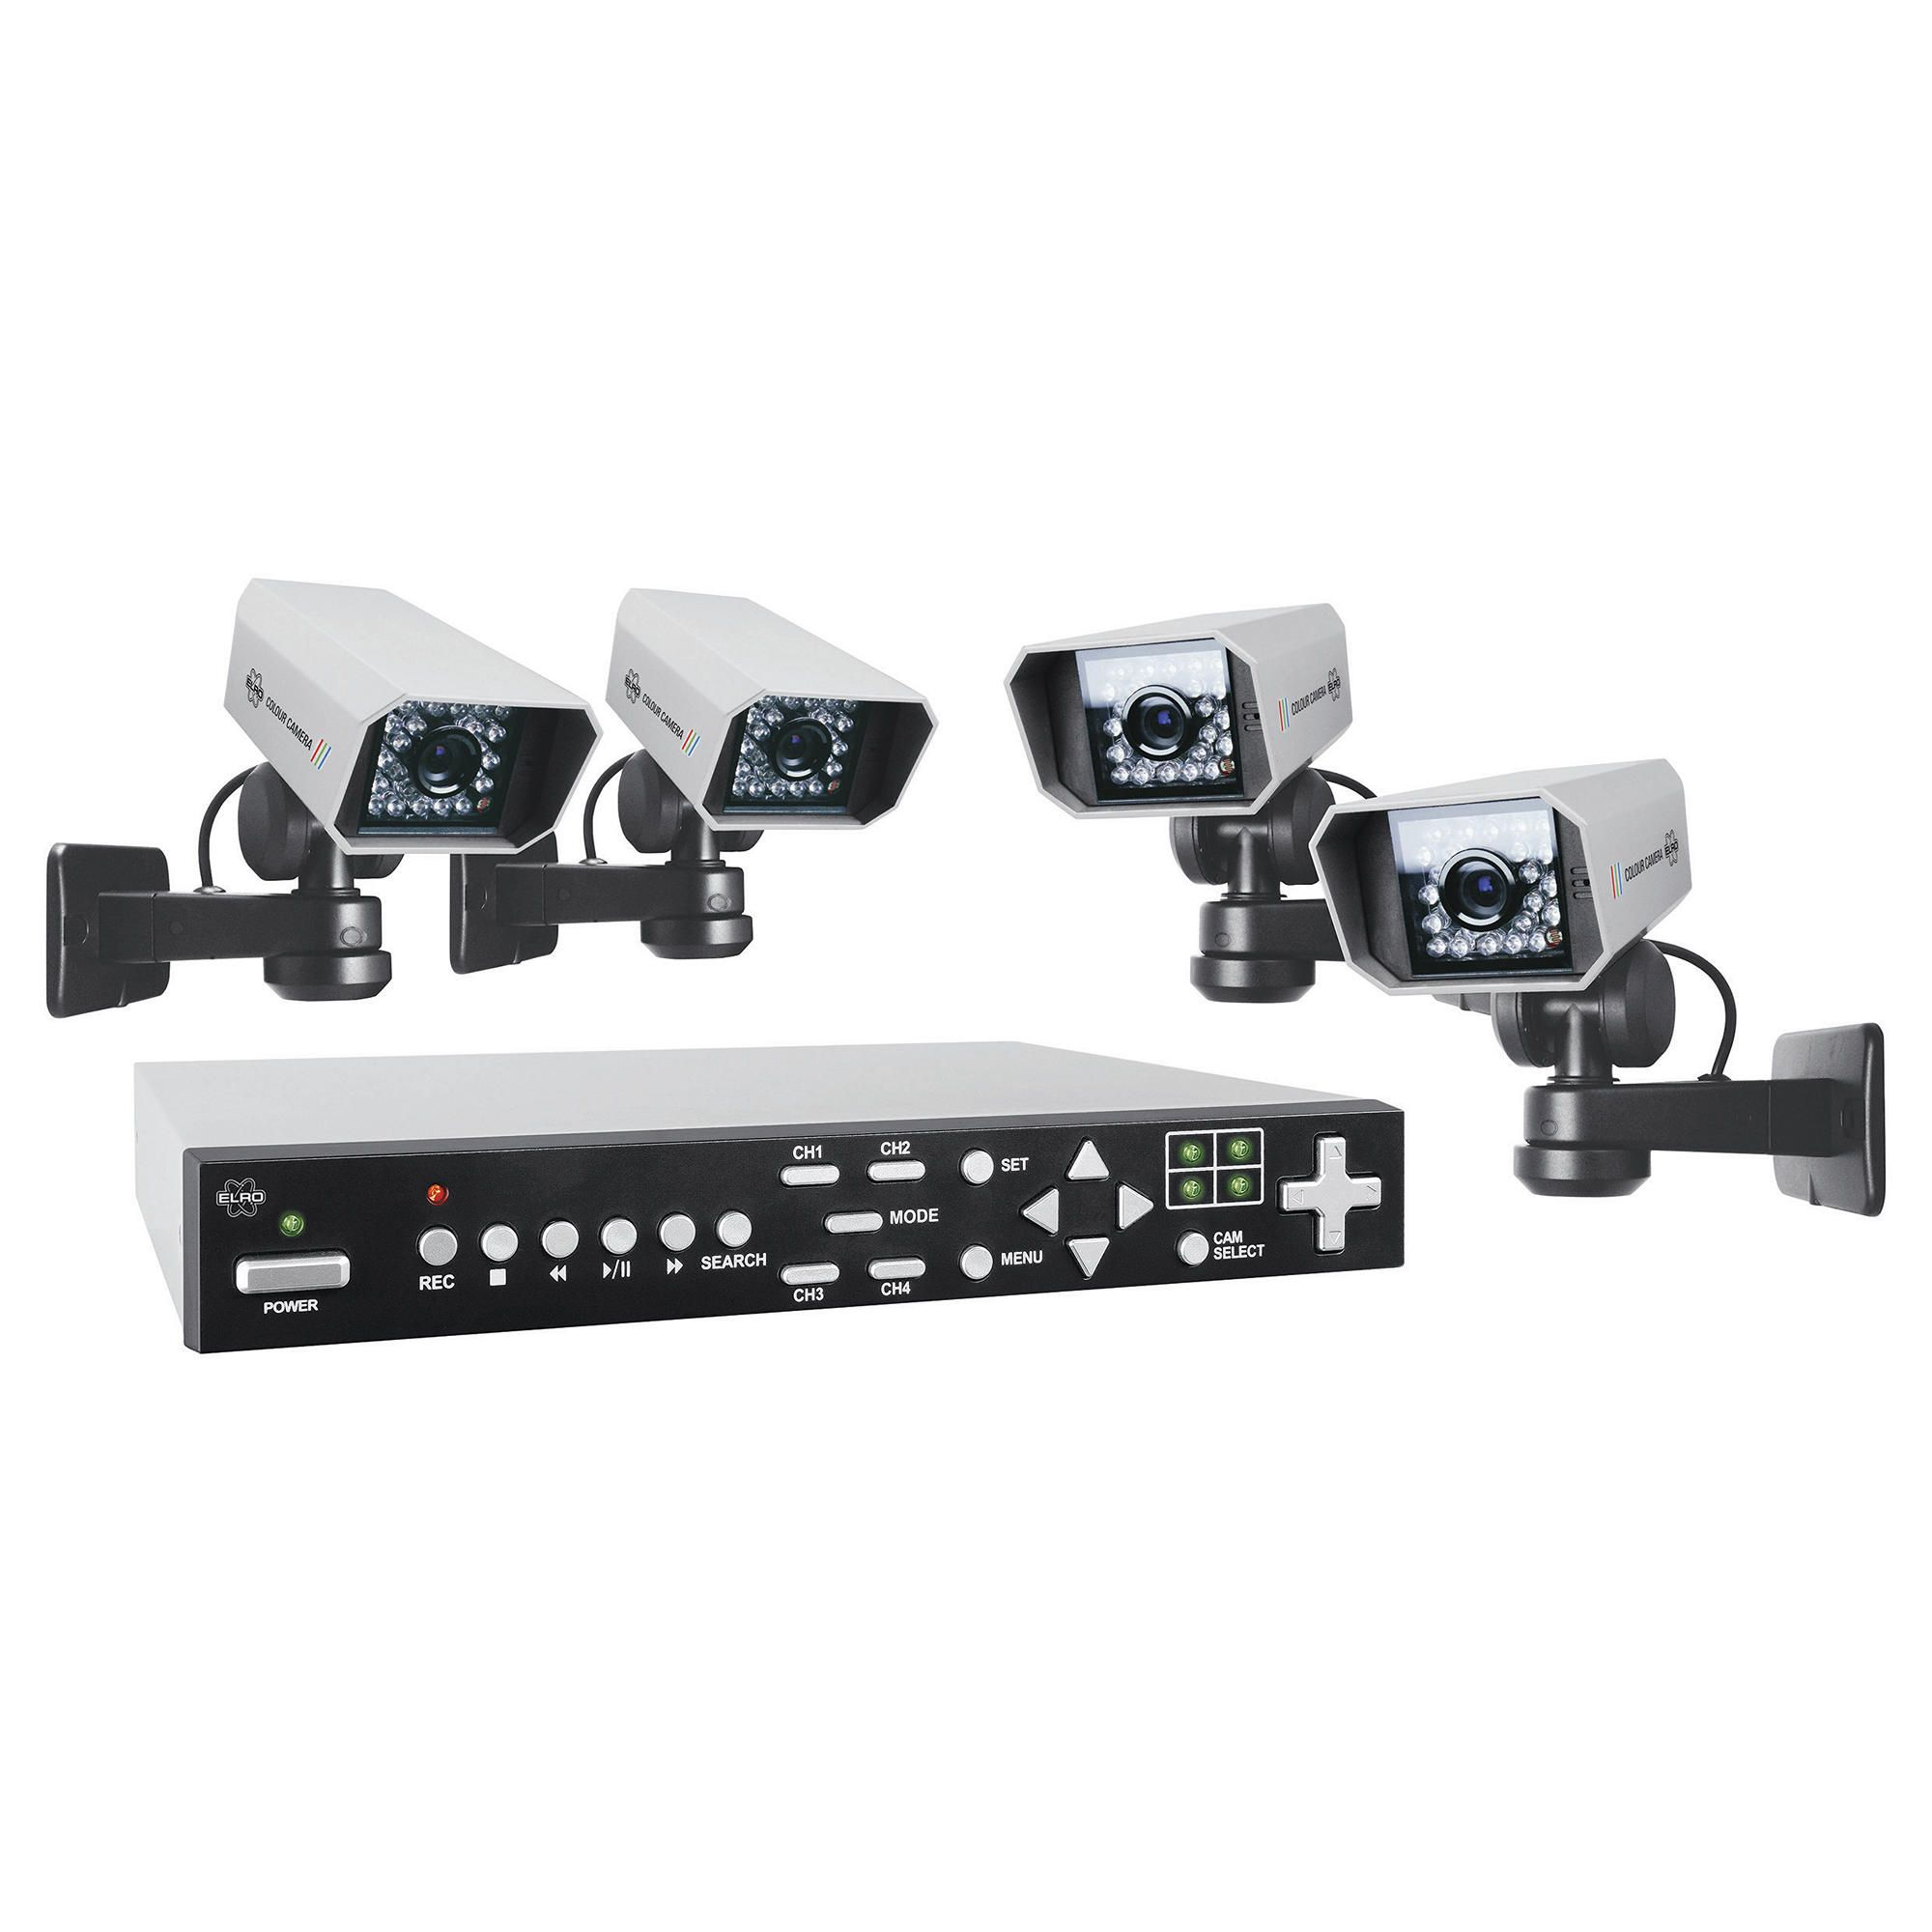 Offerta: Byron colour 320GB quad CCTV System DVR320SET